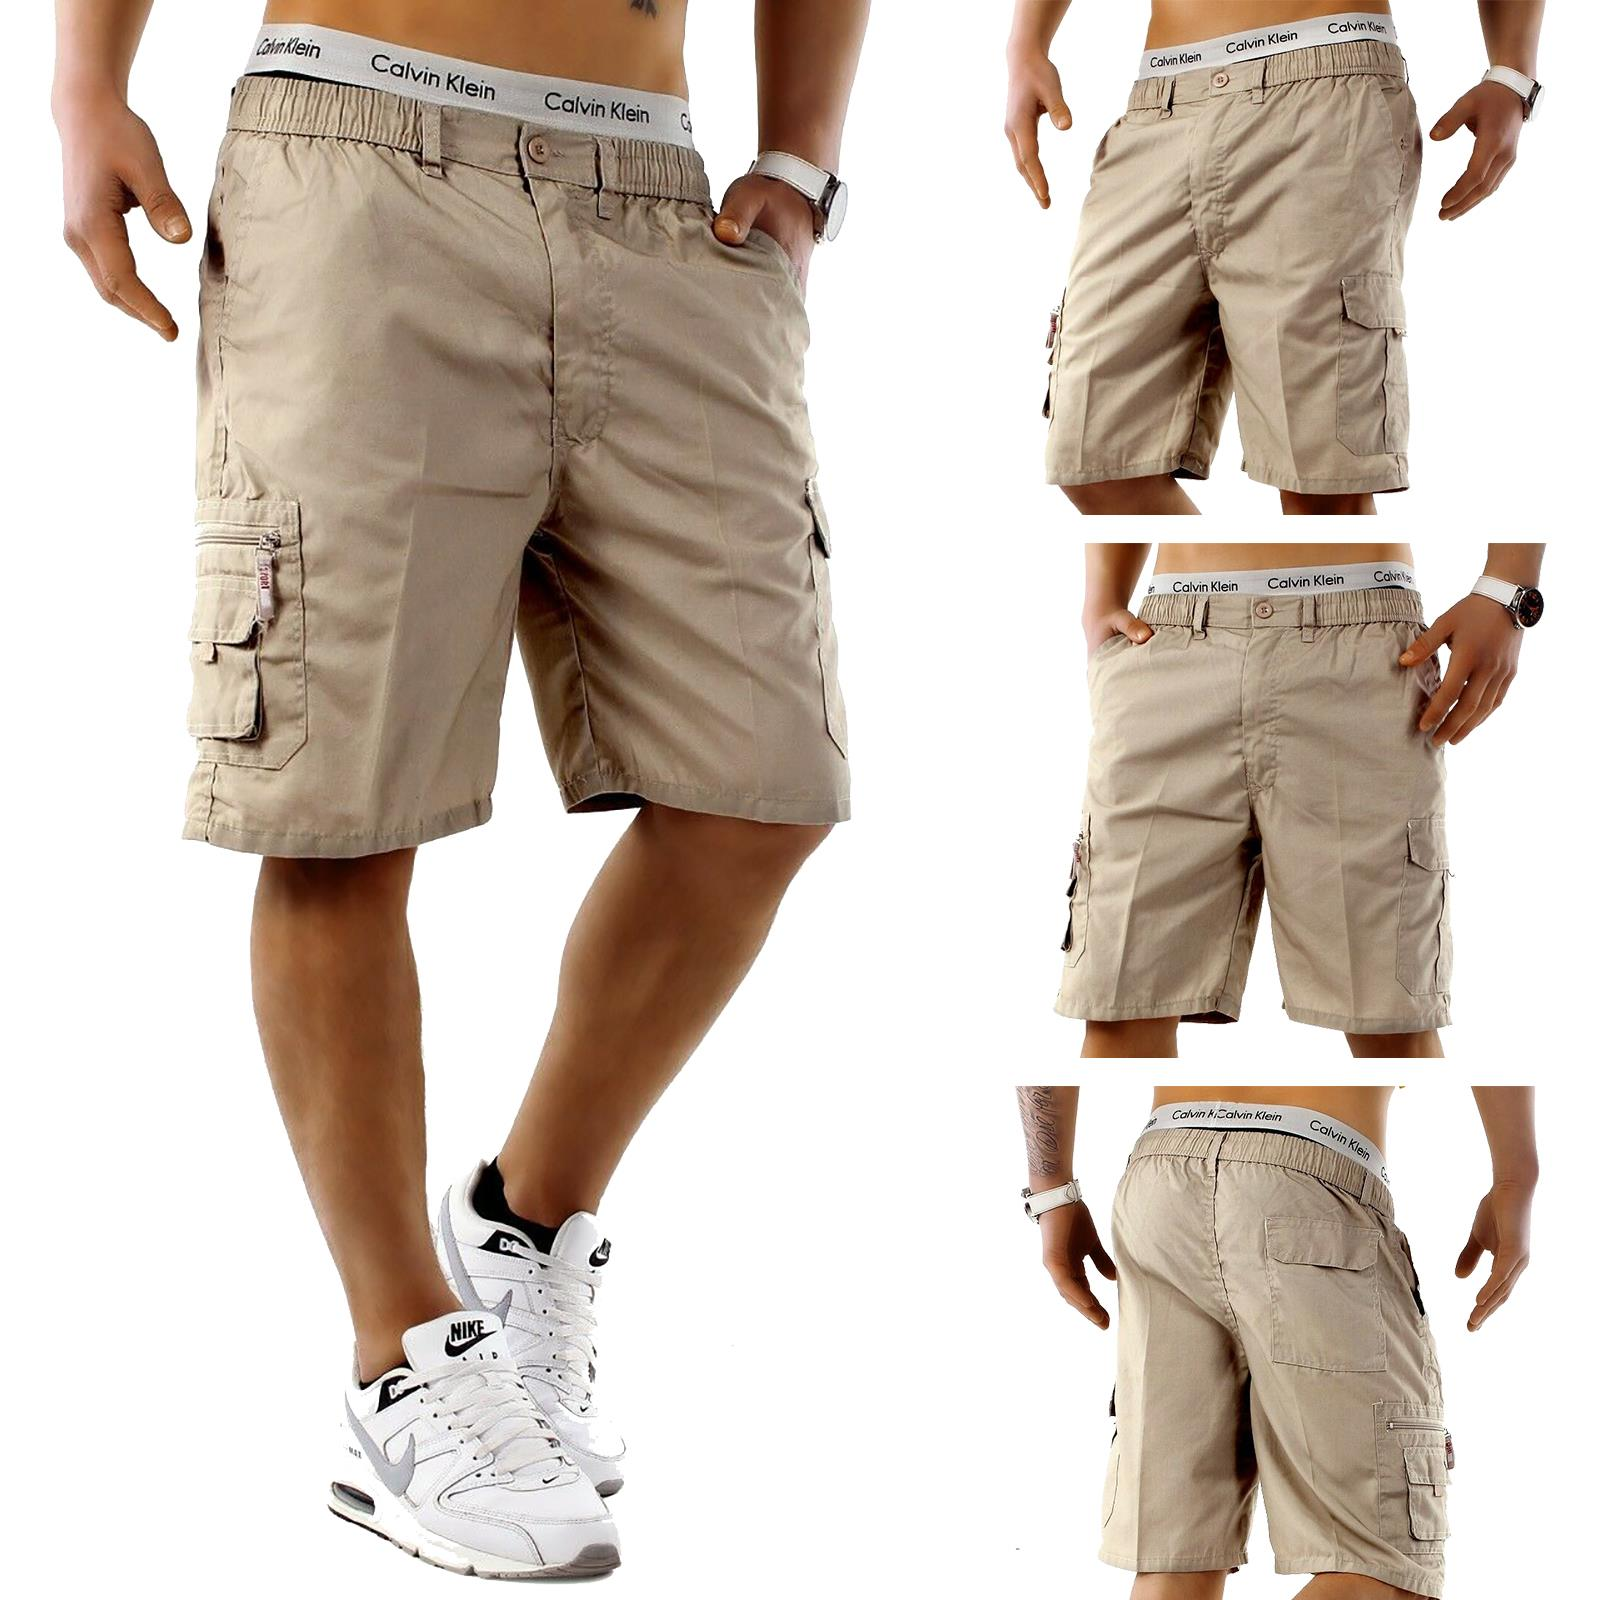 Mens-Cargo-Shorts-Elasticated-Waist-Casual-Cotton-Combat-Pants-M-L-XL-2XL-3XL thumbnail 2